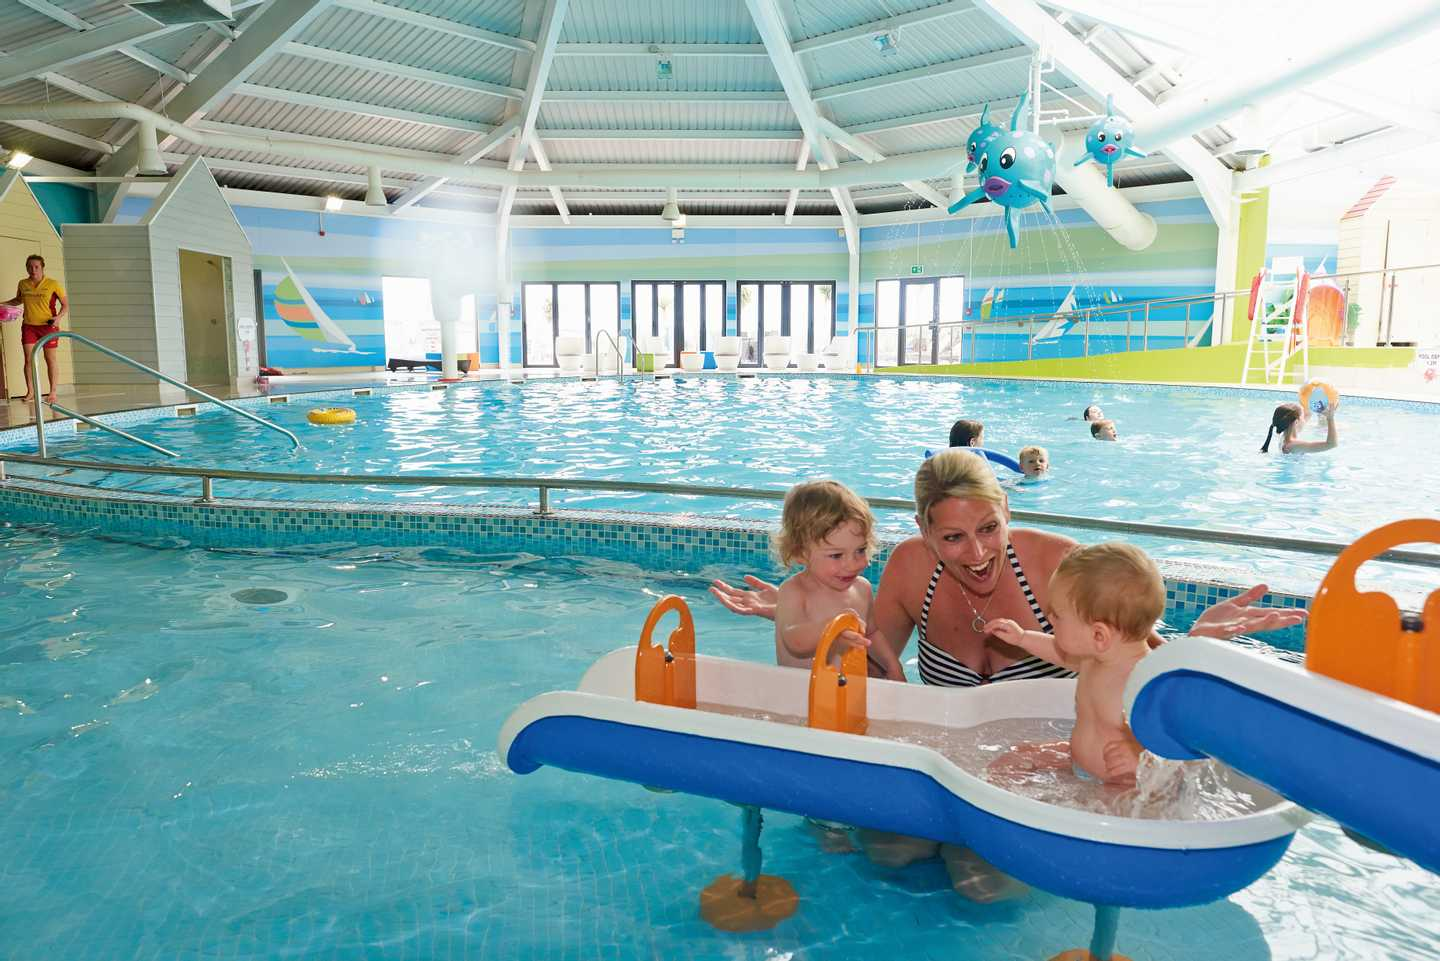 Guests enjoying the children's pool in our indoor pool